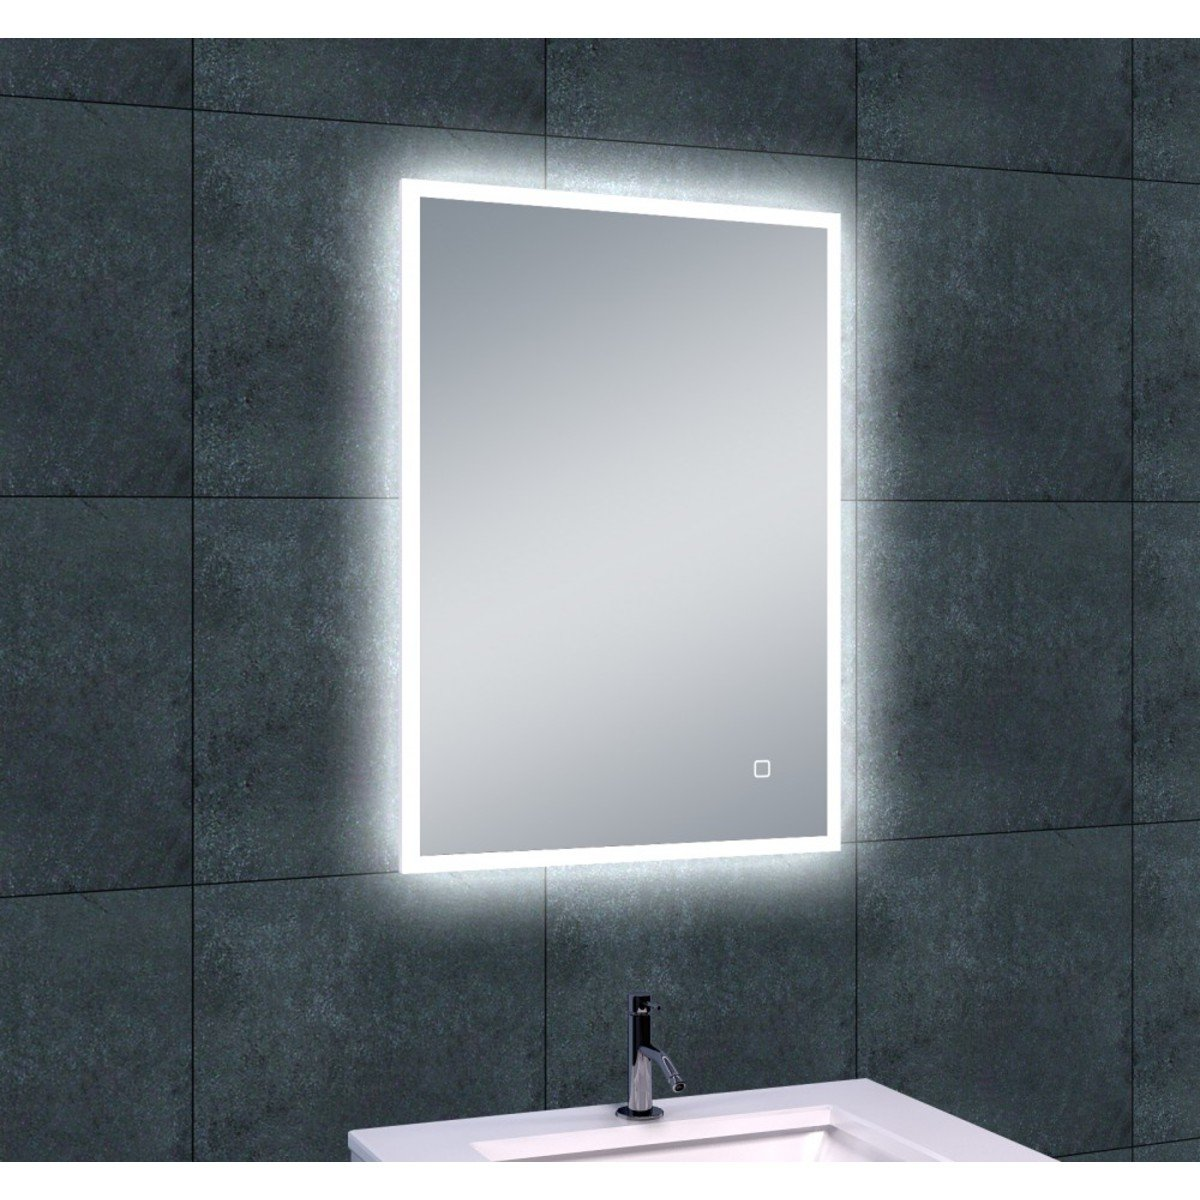 wiesbaden quatro miroir avec clairage led. Black Bedroom Furniture Sets. Home Design Ideas